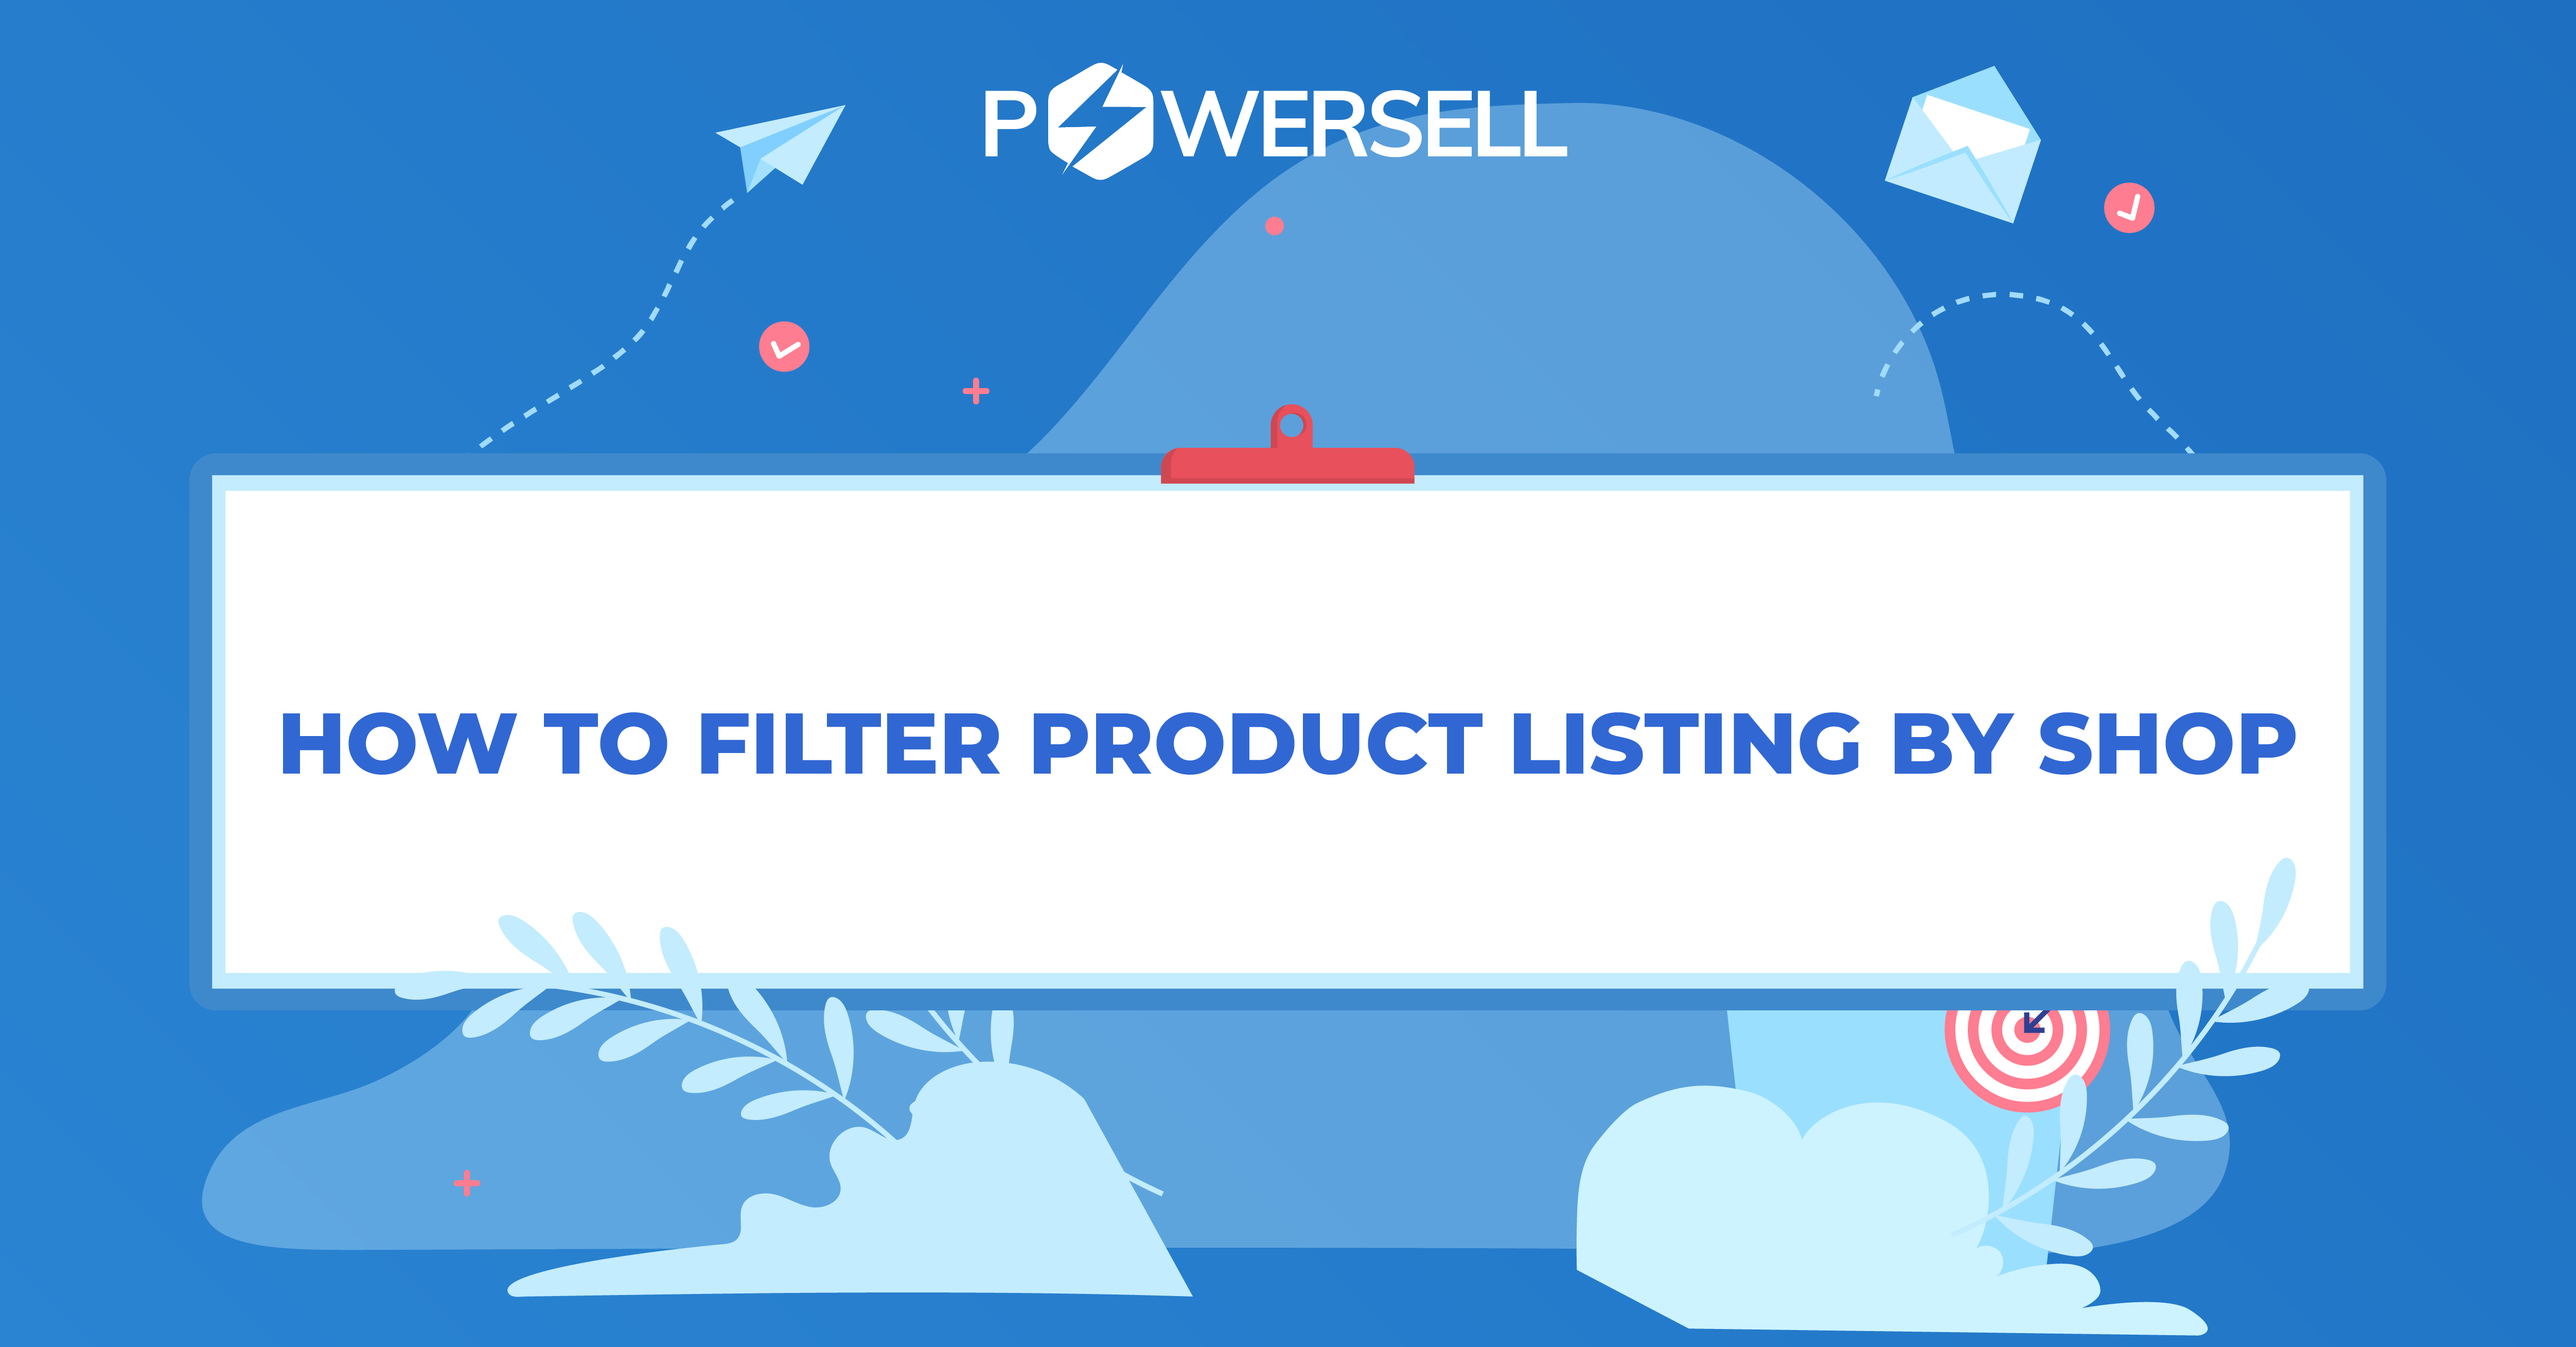 How to filter product listing by shop